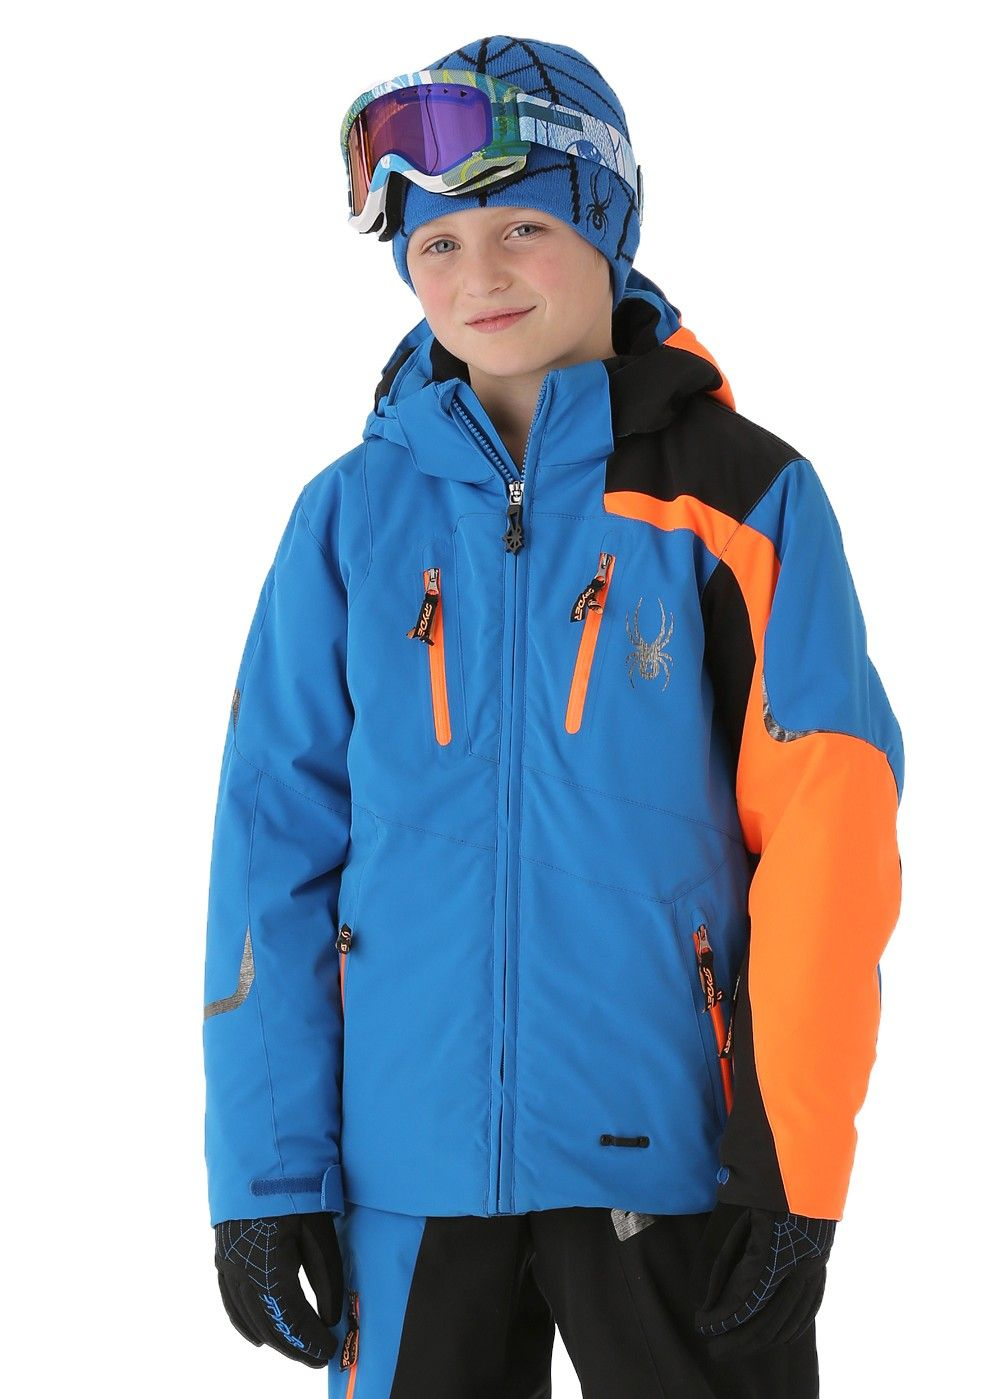 new product cffbb b73e7 Spyder Boys Avenger Jacket (Collegiate/Black/Neon Orange ...